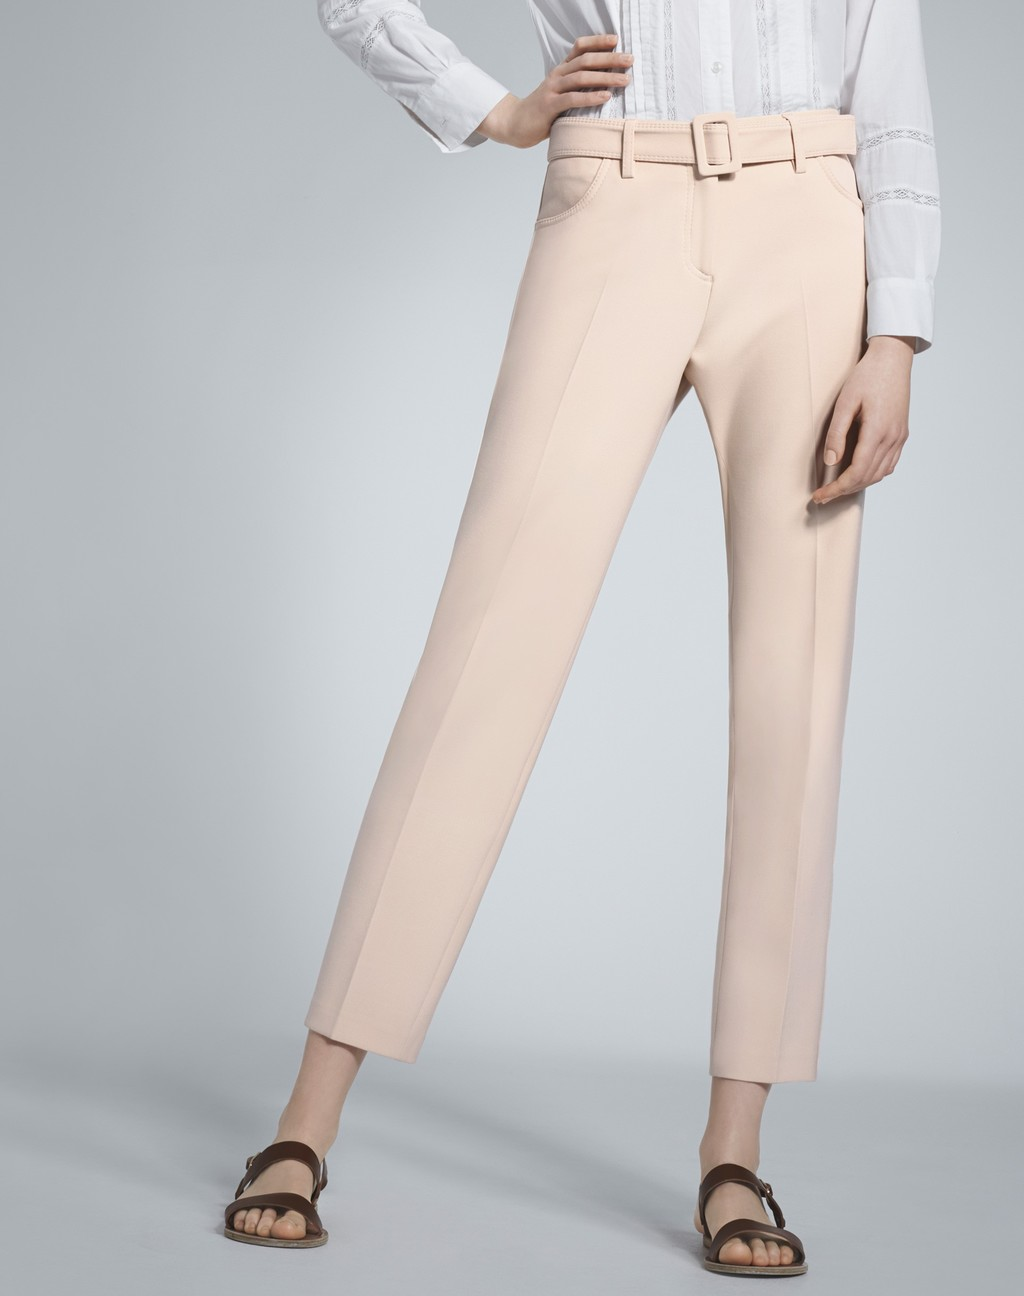 Slim Leg Belted Trouser Oyster - pattern: plain; style: peg leg; waist: high rise; waist detail: belted waist/tie at waist/drawstring; predominant colour: nude; length: ankle length; fibres: polyester/polyamide - 100%; texture group: crepes; fit: tapered; pattern type: fabric; occasions: creative work; season: s/s 2016; wardrobe: basic